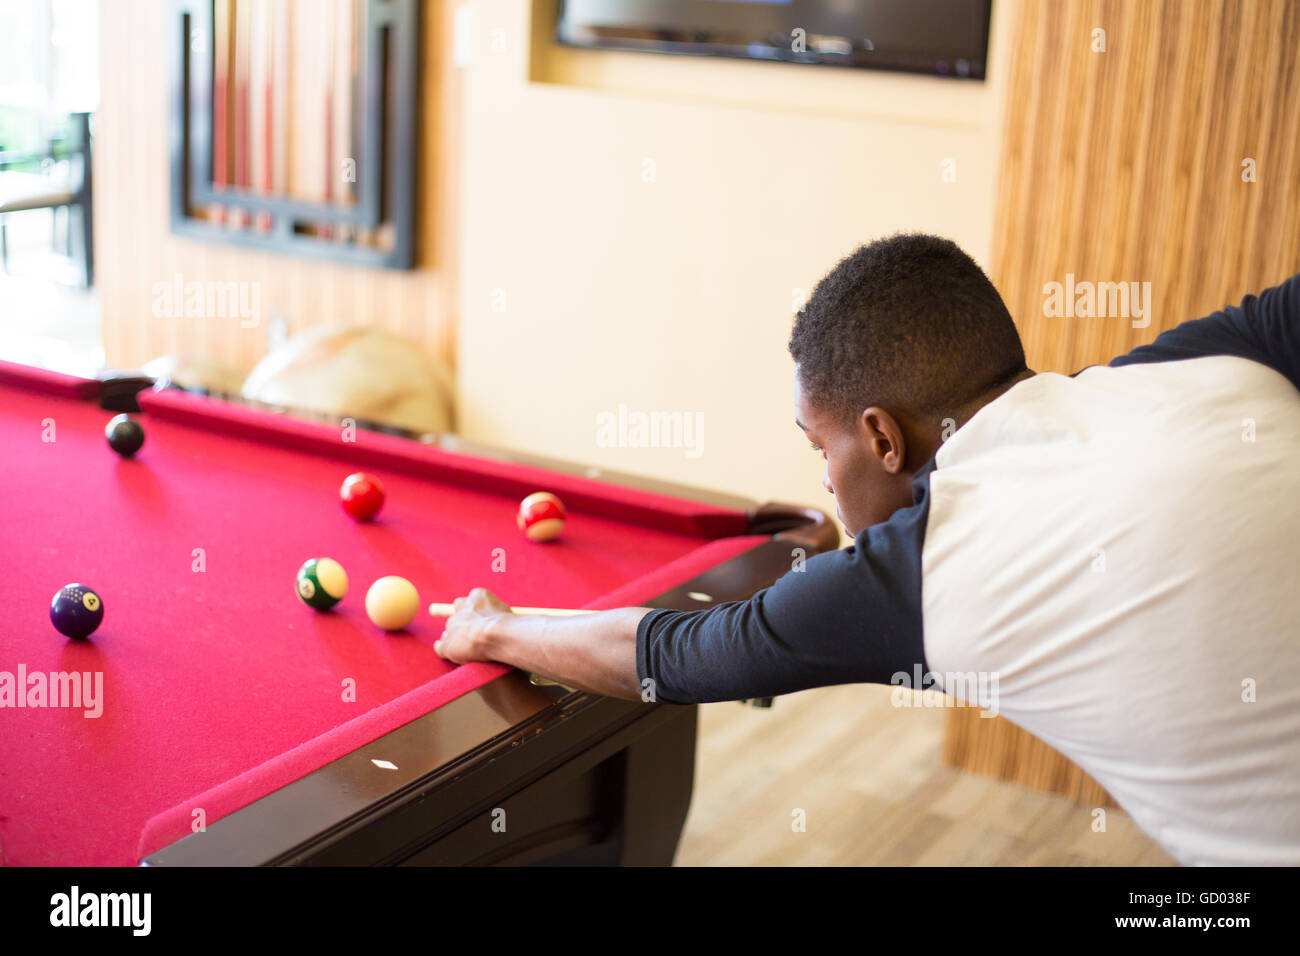 Closeup portrait, young man hanging out, playing billiards at red pool table, isolated indoors background - Stock Image